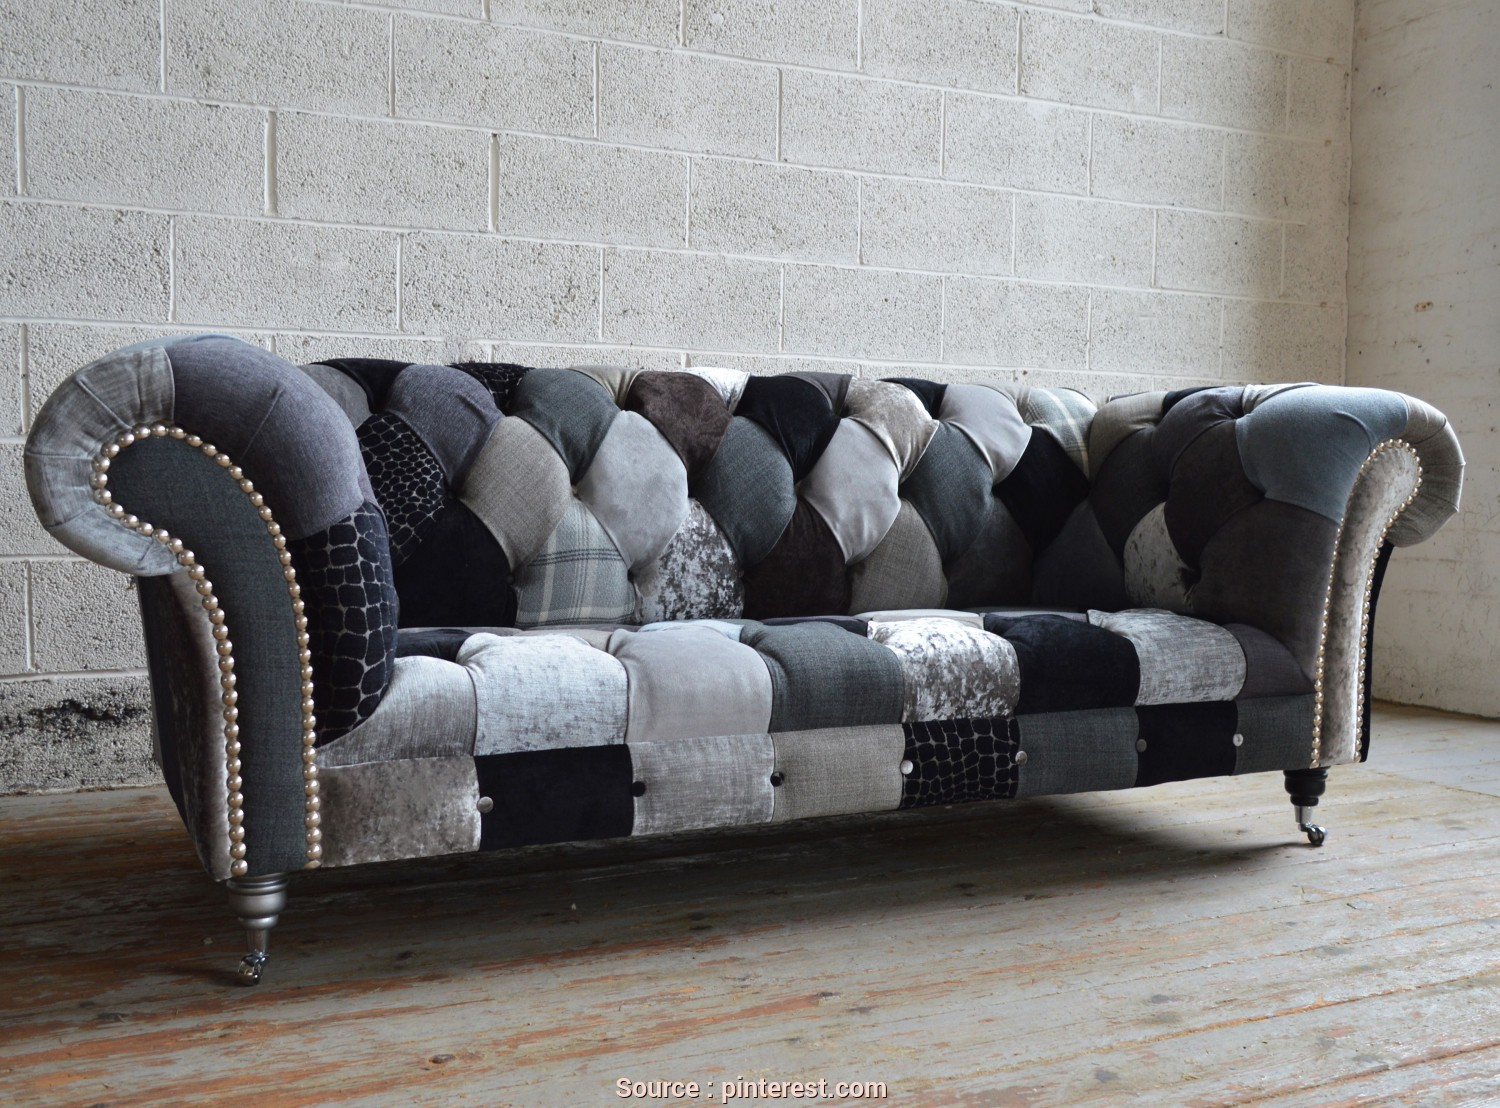 Divano Chester Patchwork, A Buon Mercato Monochrome Walton Patchwork Chesterfield Sofa, Couches In 2019